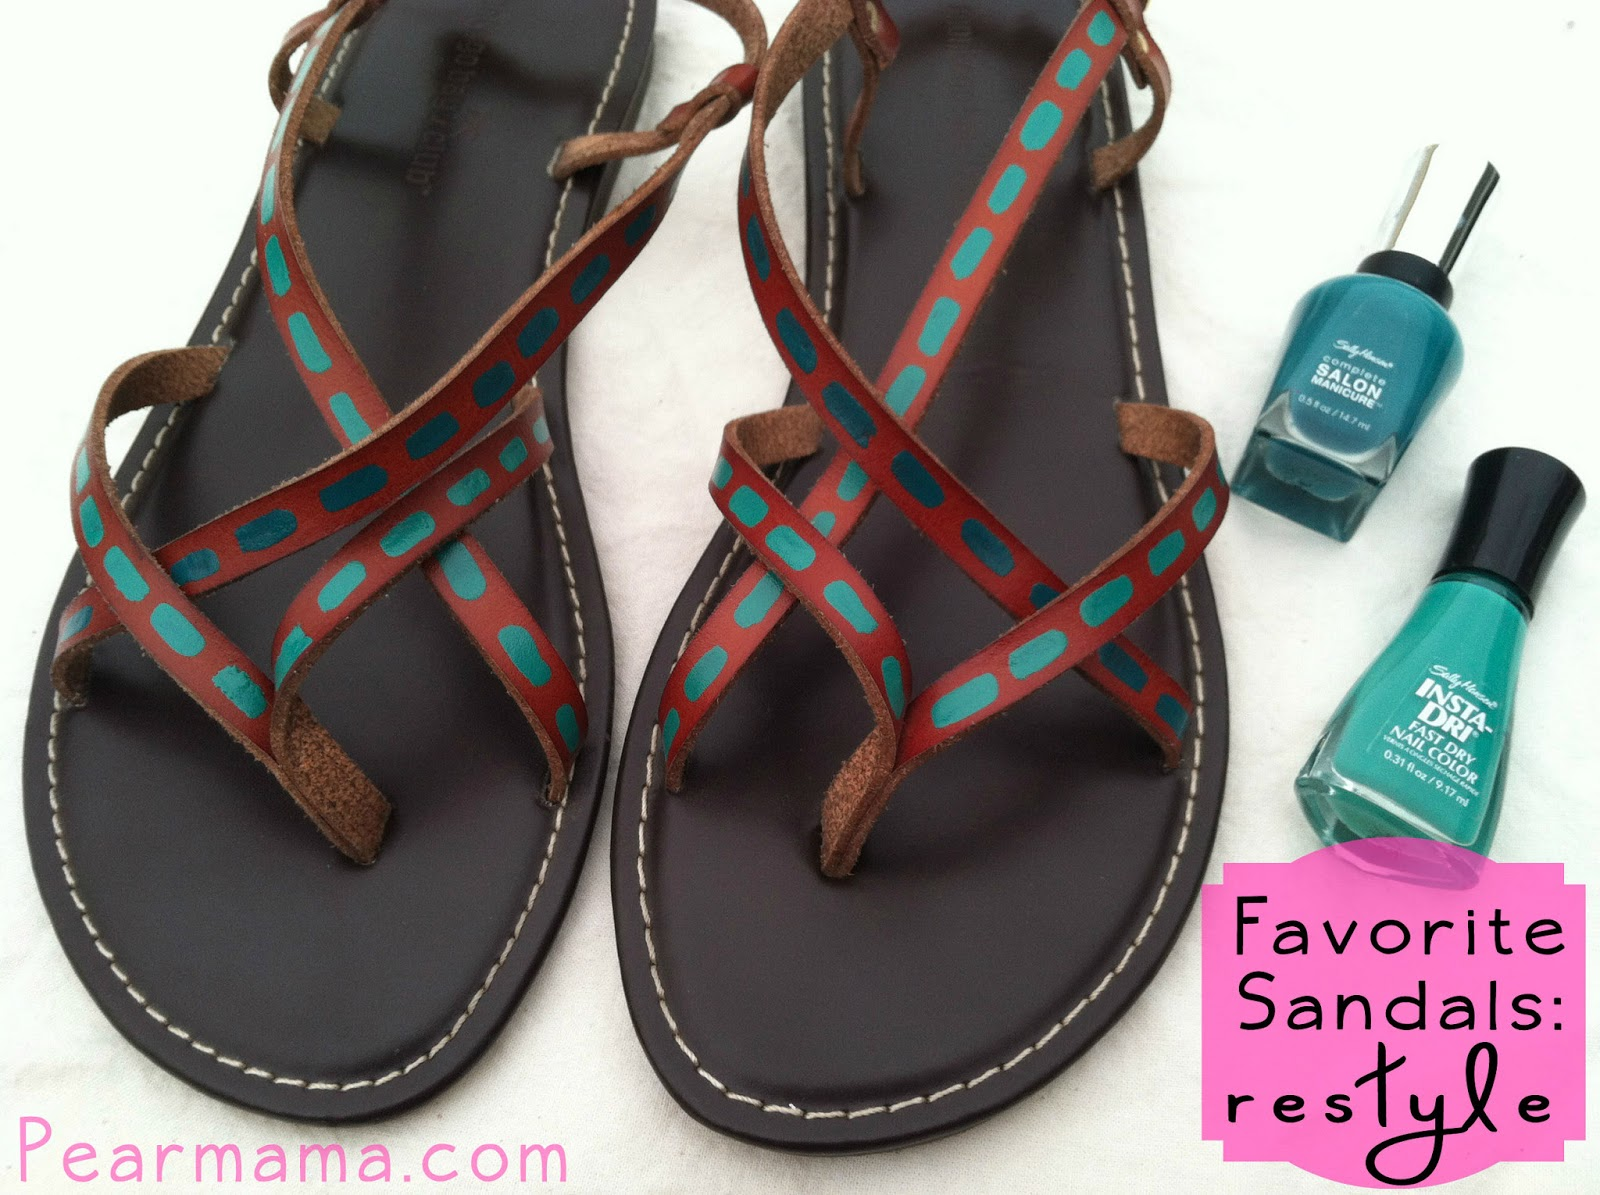 Pearmama: Restyle Your Favorite Sandals with Nail Polish